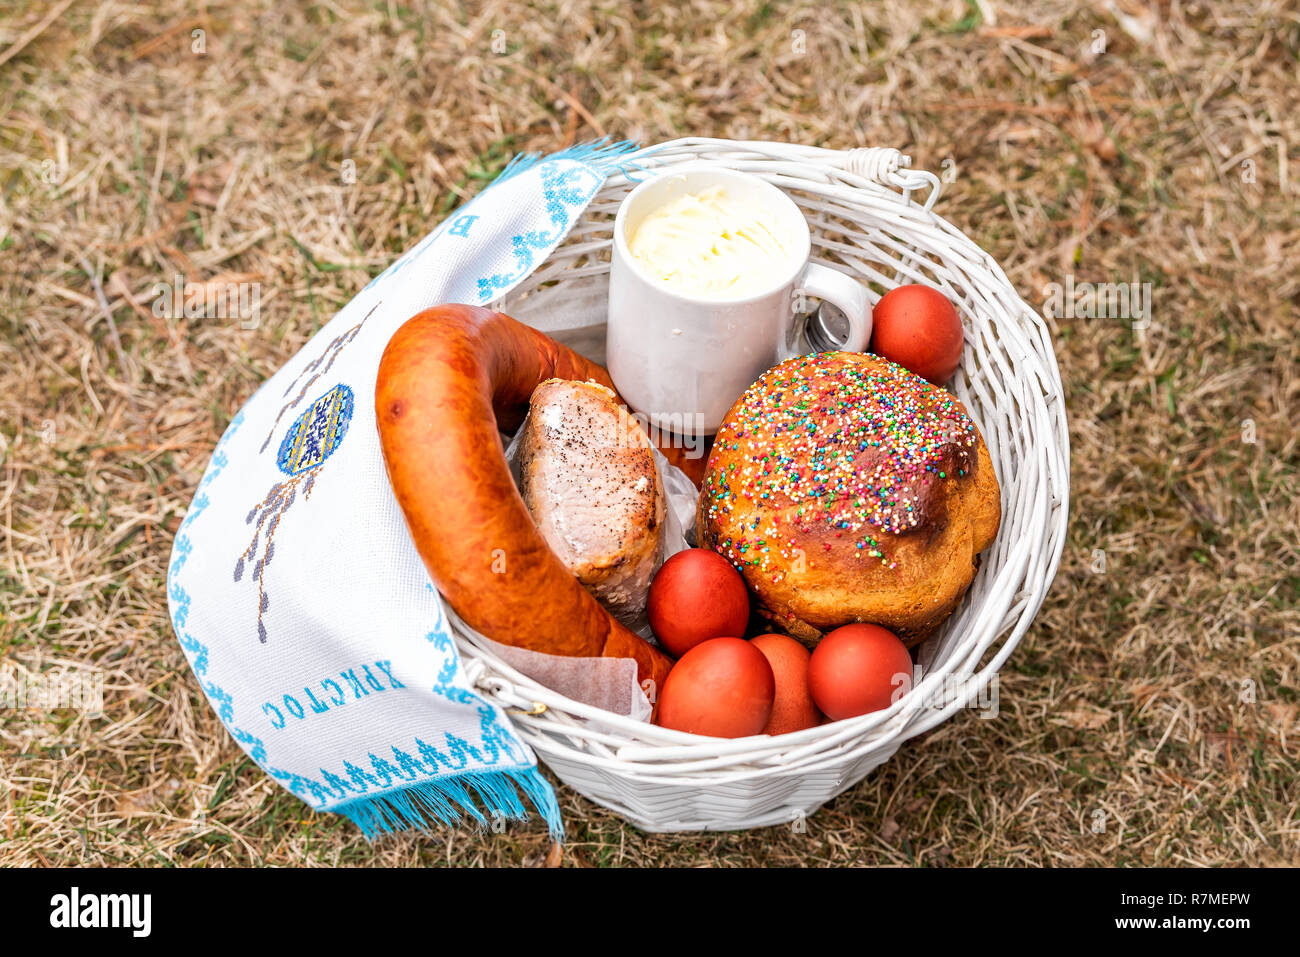 Orthodoxes ostern